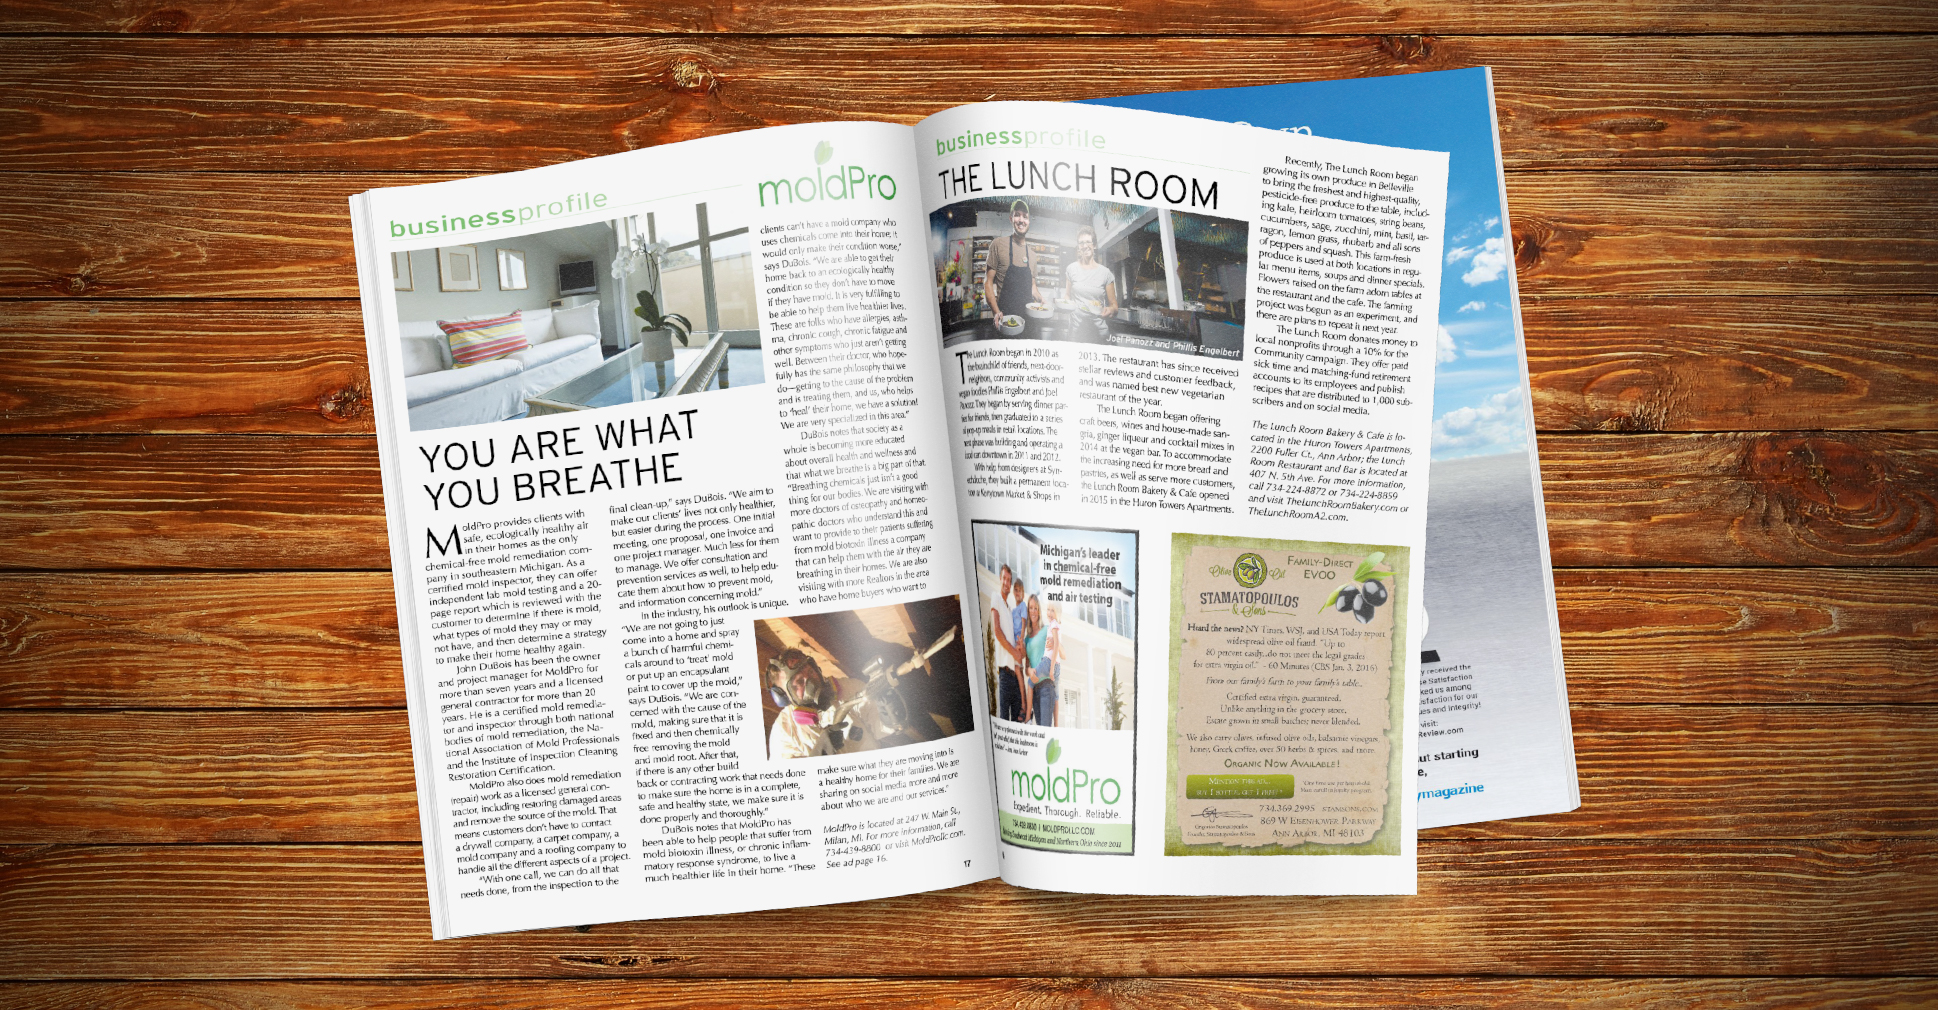 MoldPro LLC is featured in the September Issue of Natural Awakenings Magazine